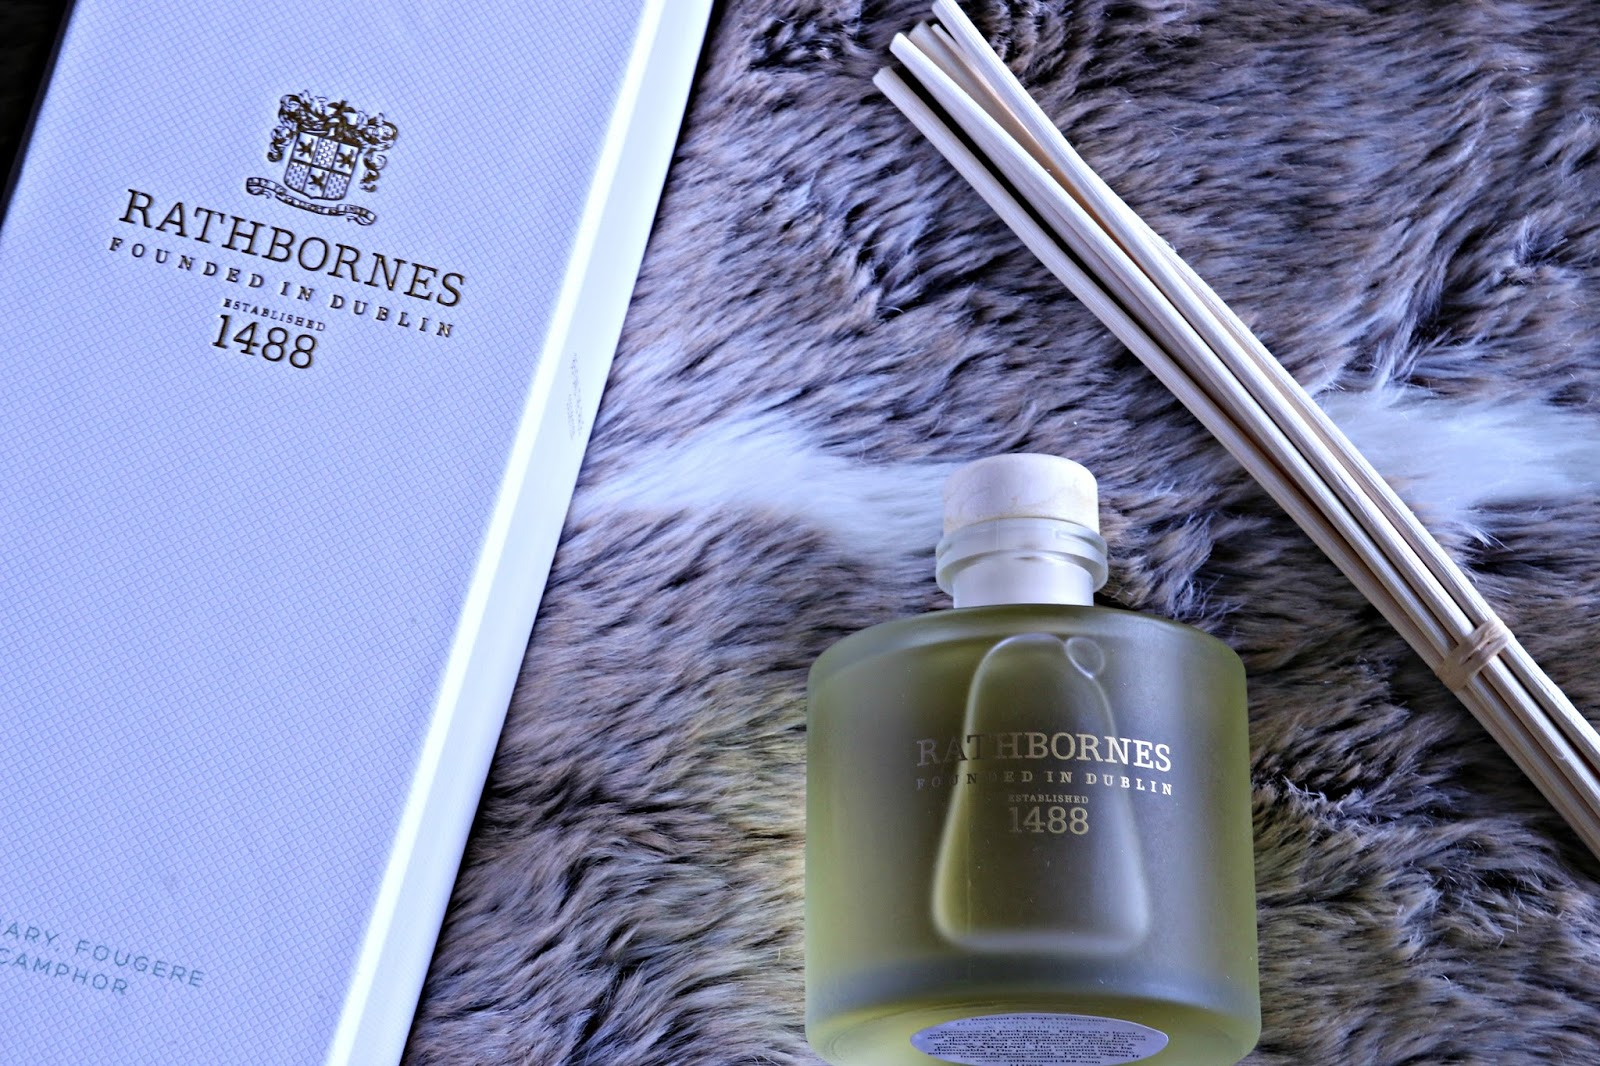 Rathbornes Rosemary Fougere and Camphor Scented Reed Diffuser Image